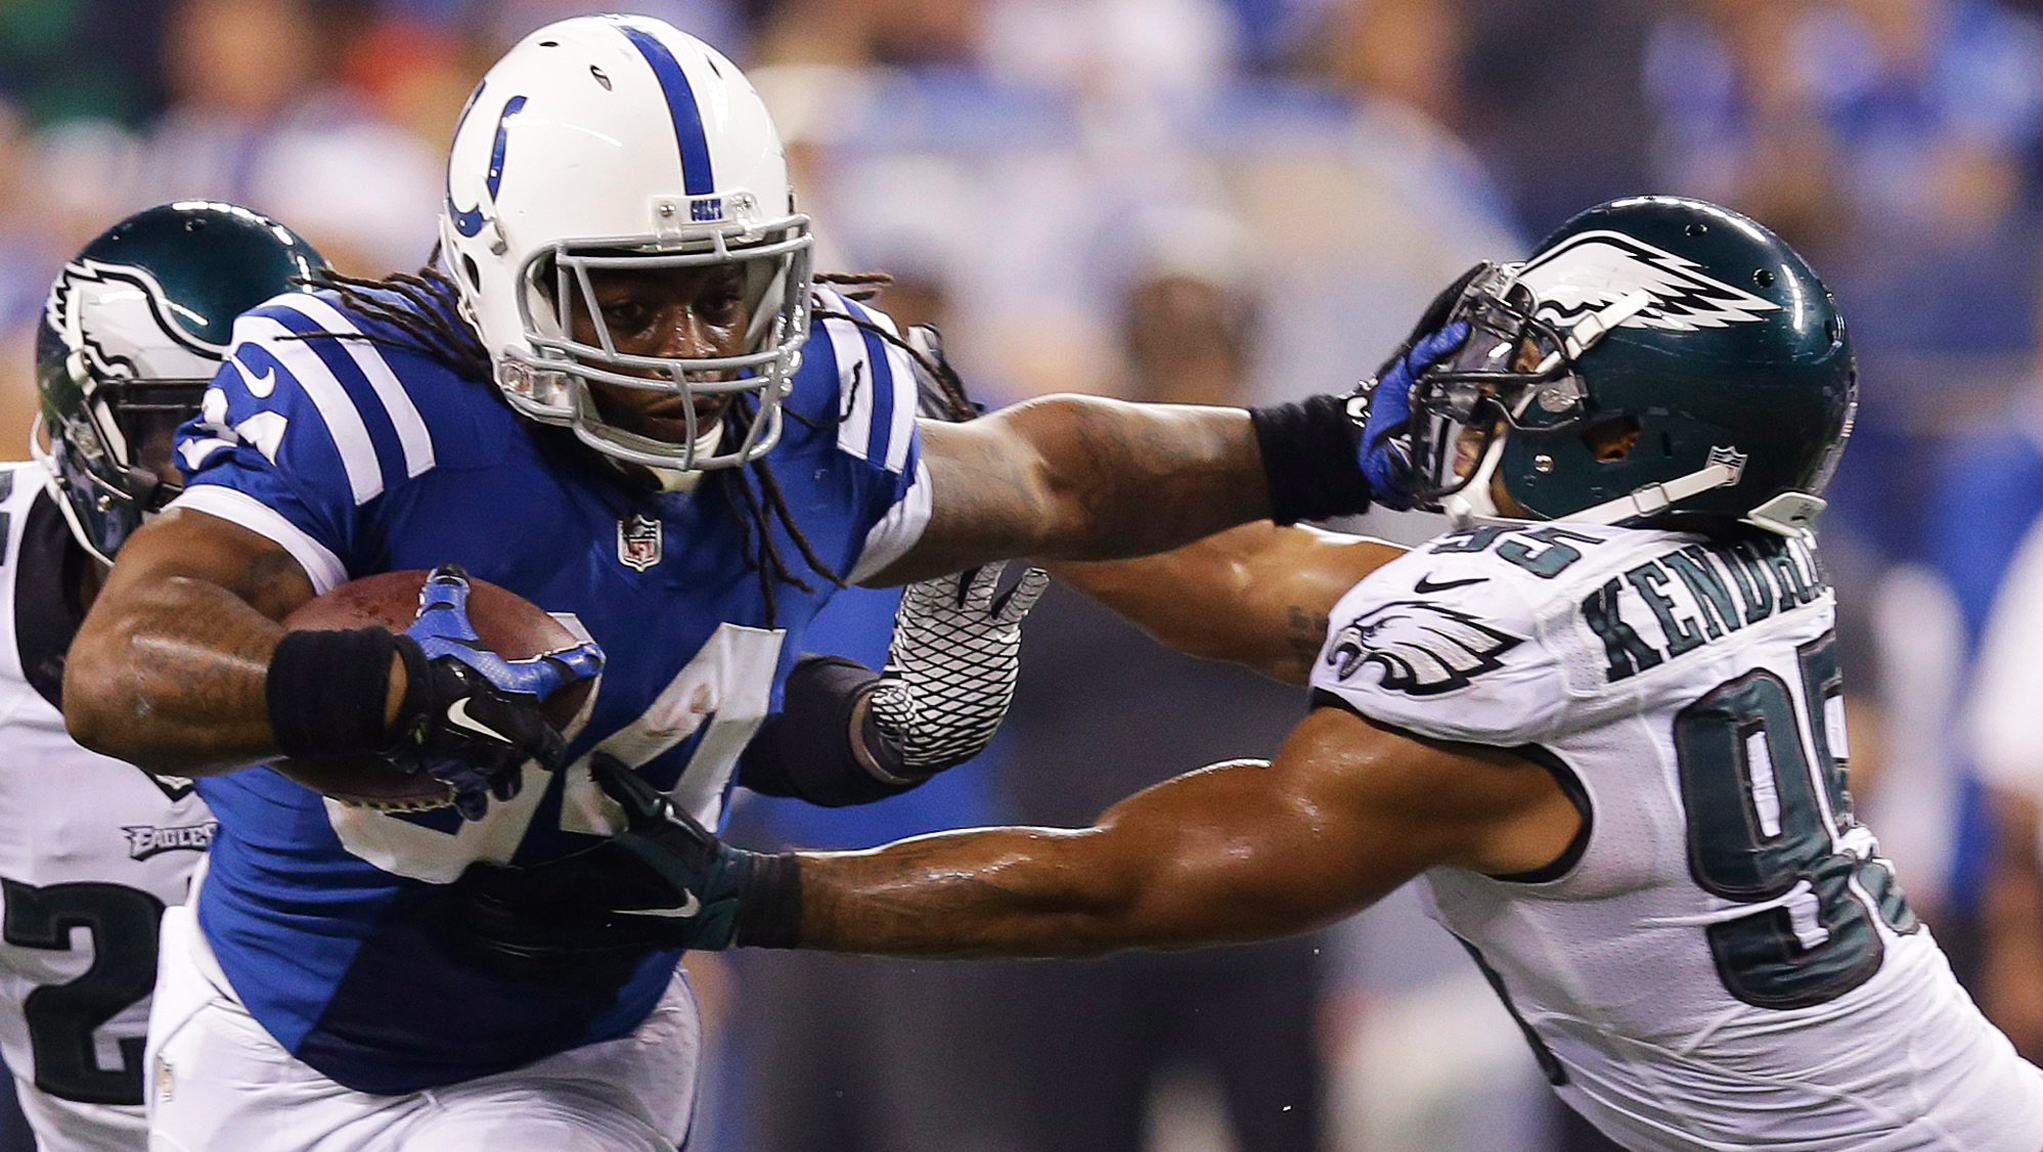 Former Alabama RB Trent Richardson signs with new team